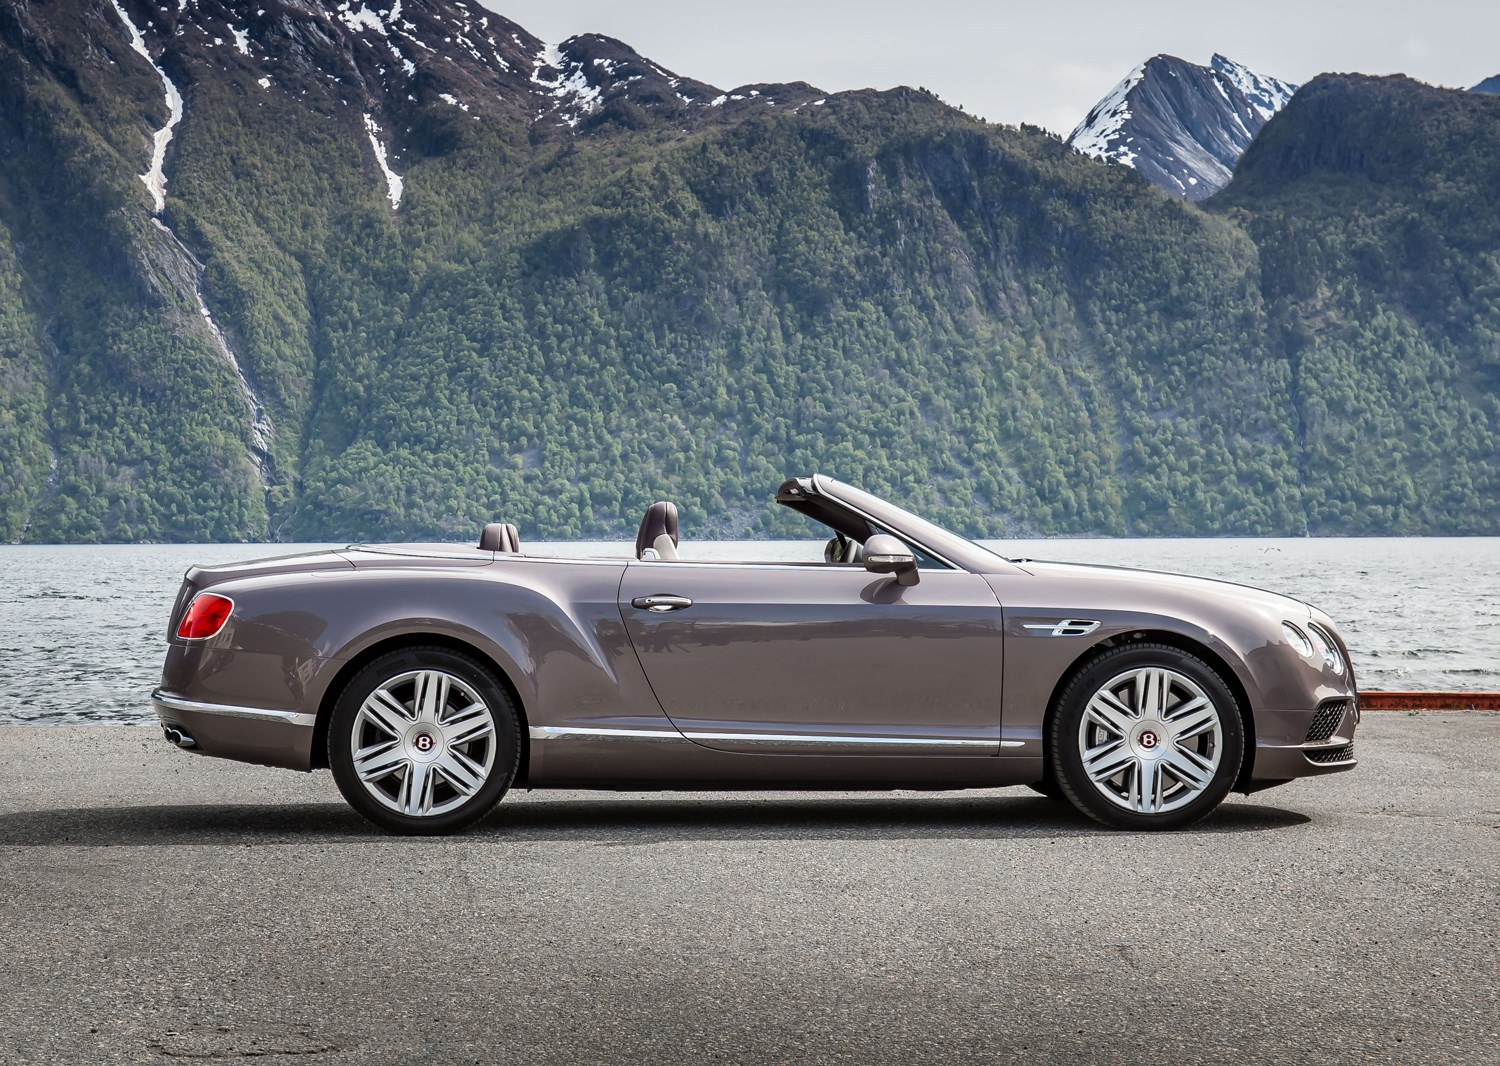 bentley continental gt gtc convertible review 2011 parkers. Black Bedroom Furniture Sets. Home Design Ideas